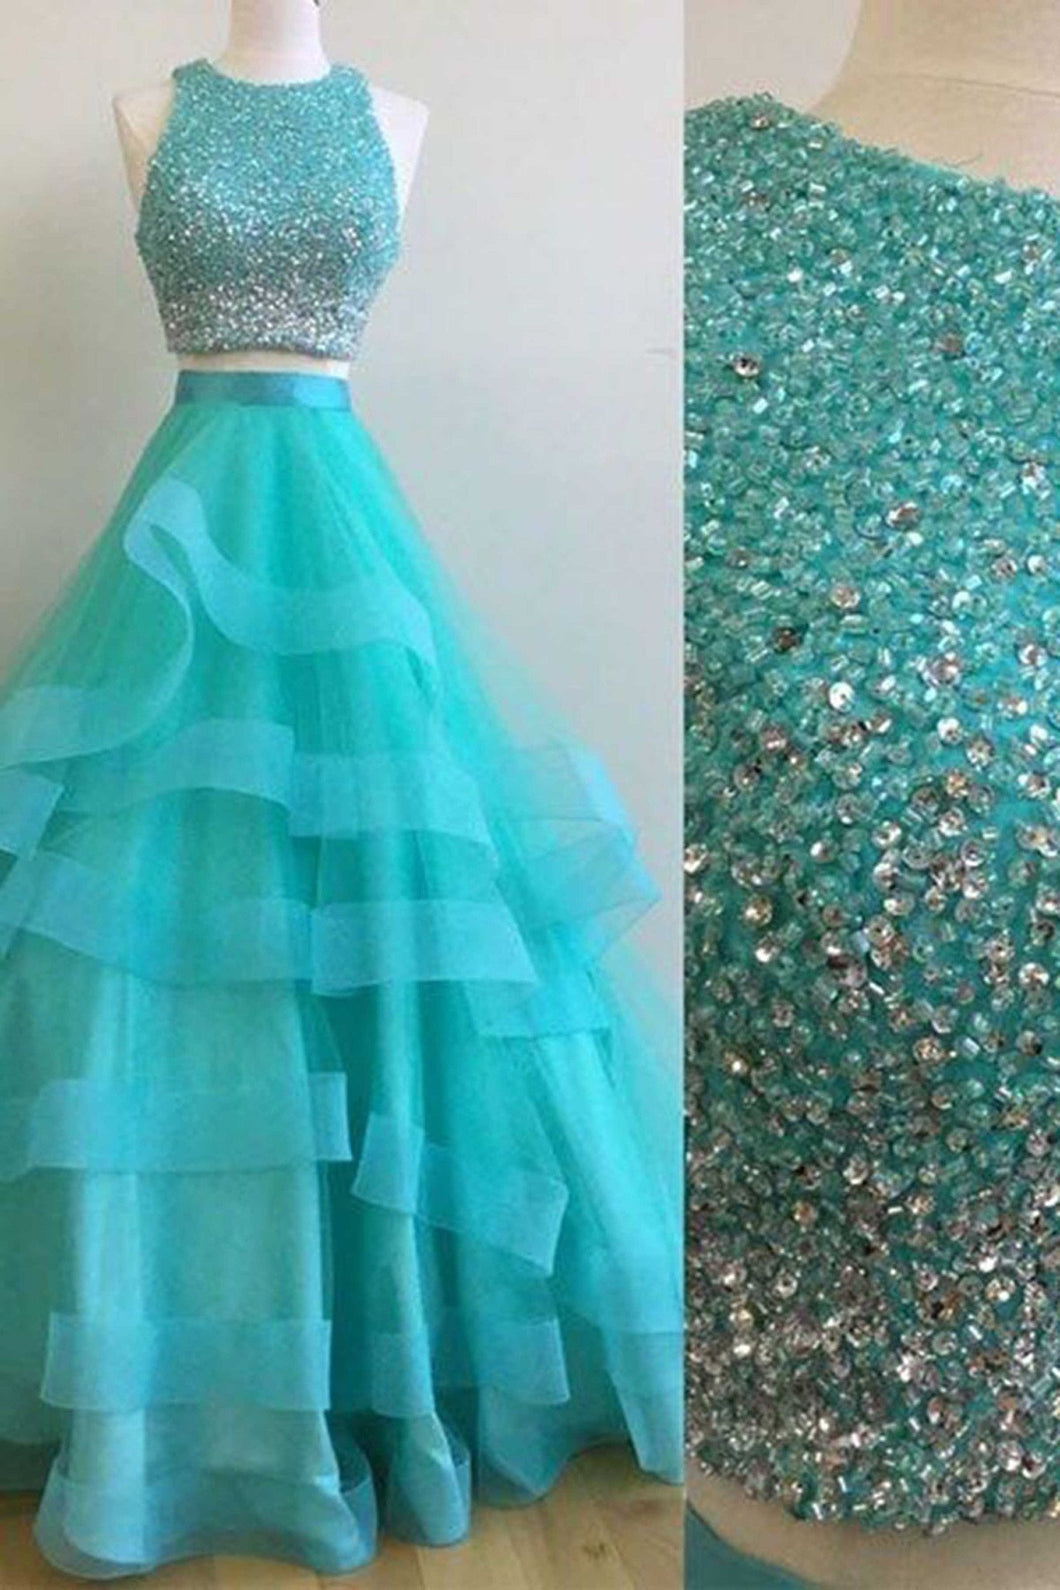 2019 Prom Dresses | Blue tulle two pieces sequins A-line round neck long prom dress for teens